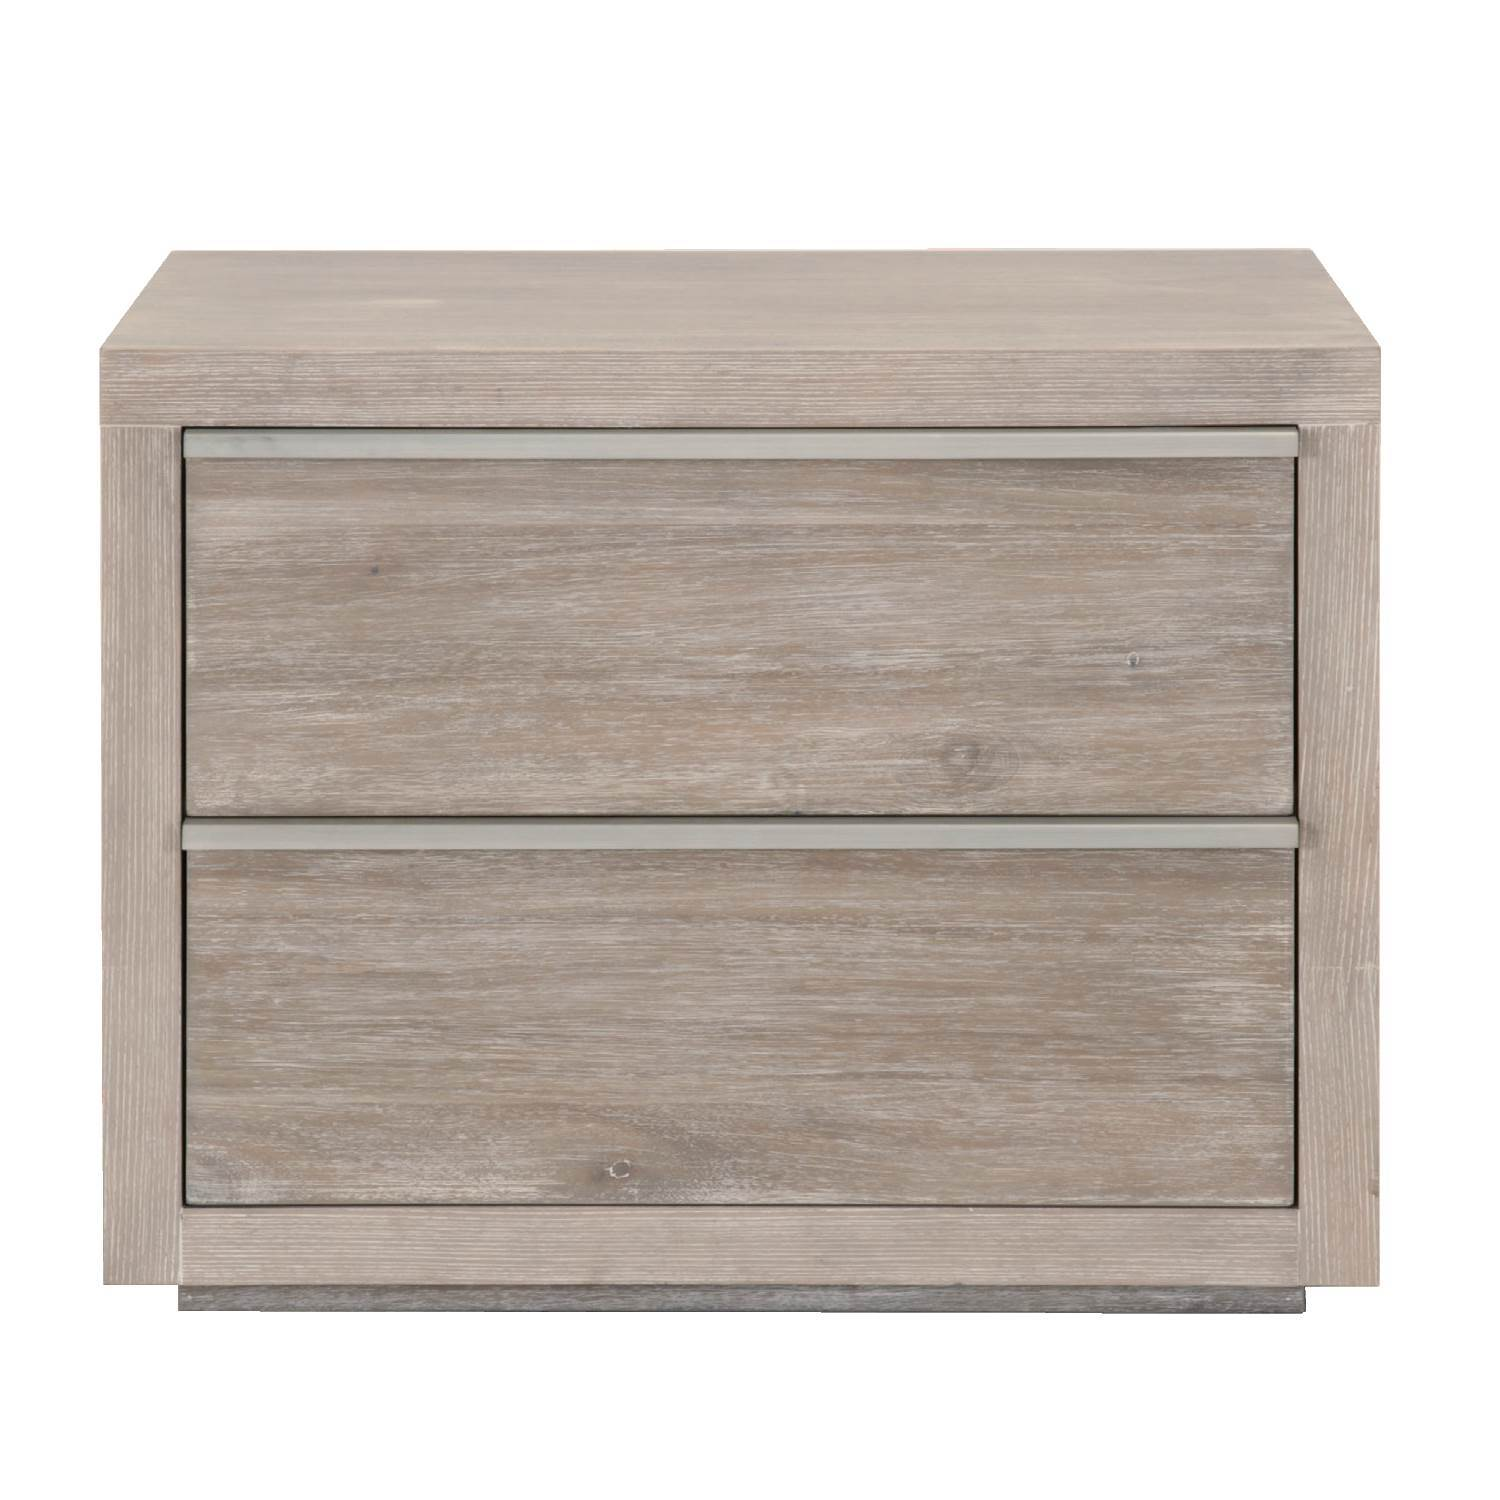 Steele 2-Drawer Nightstand in Natural Gray